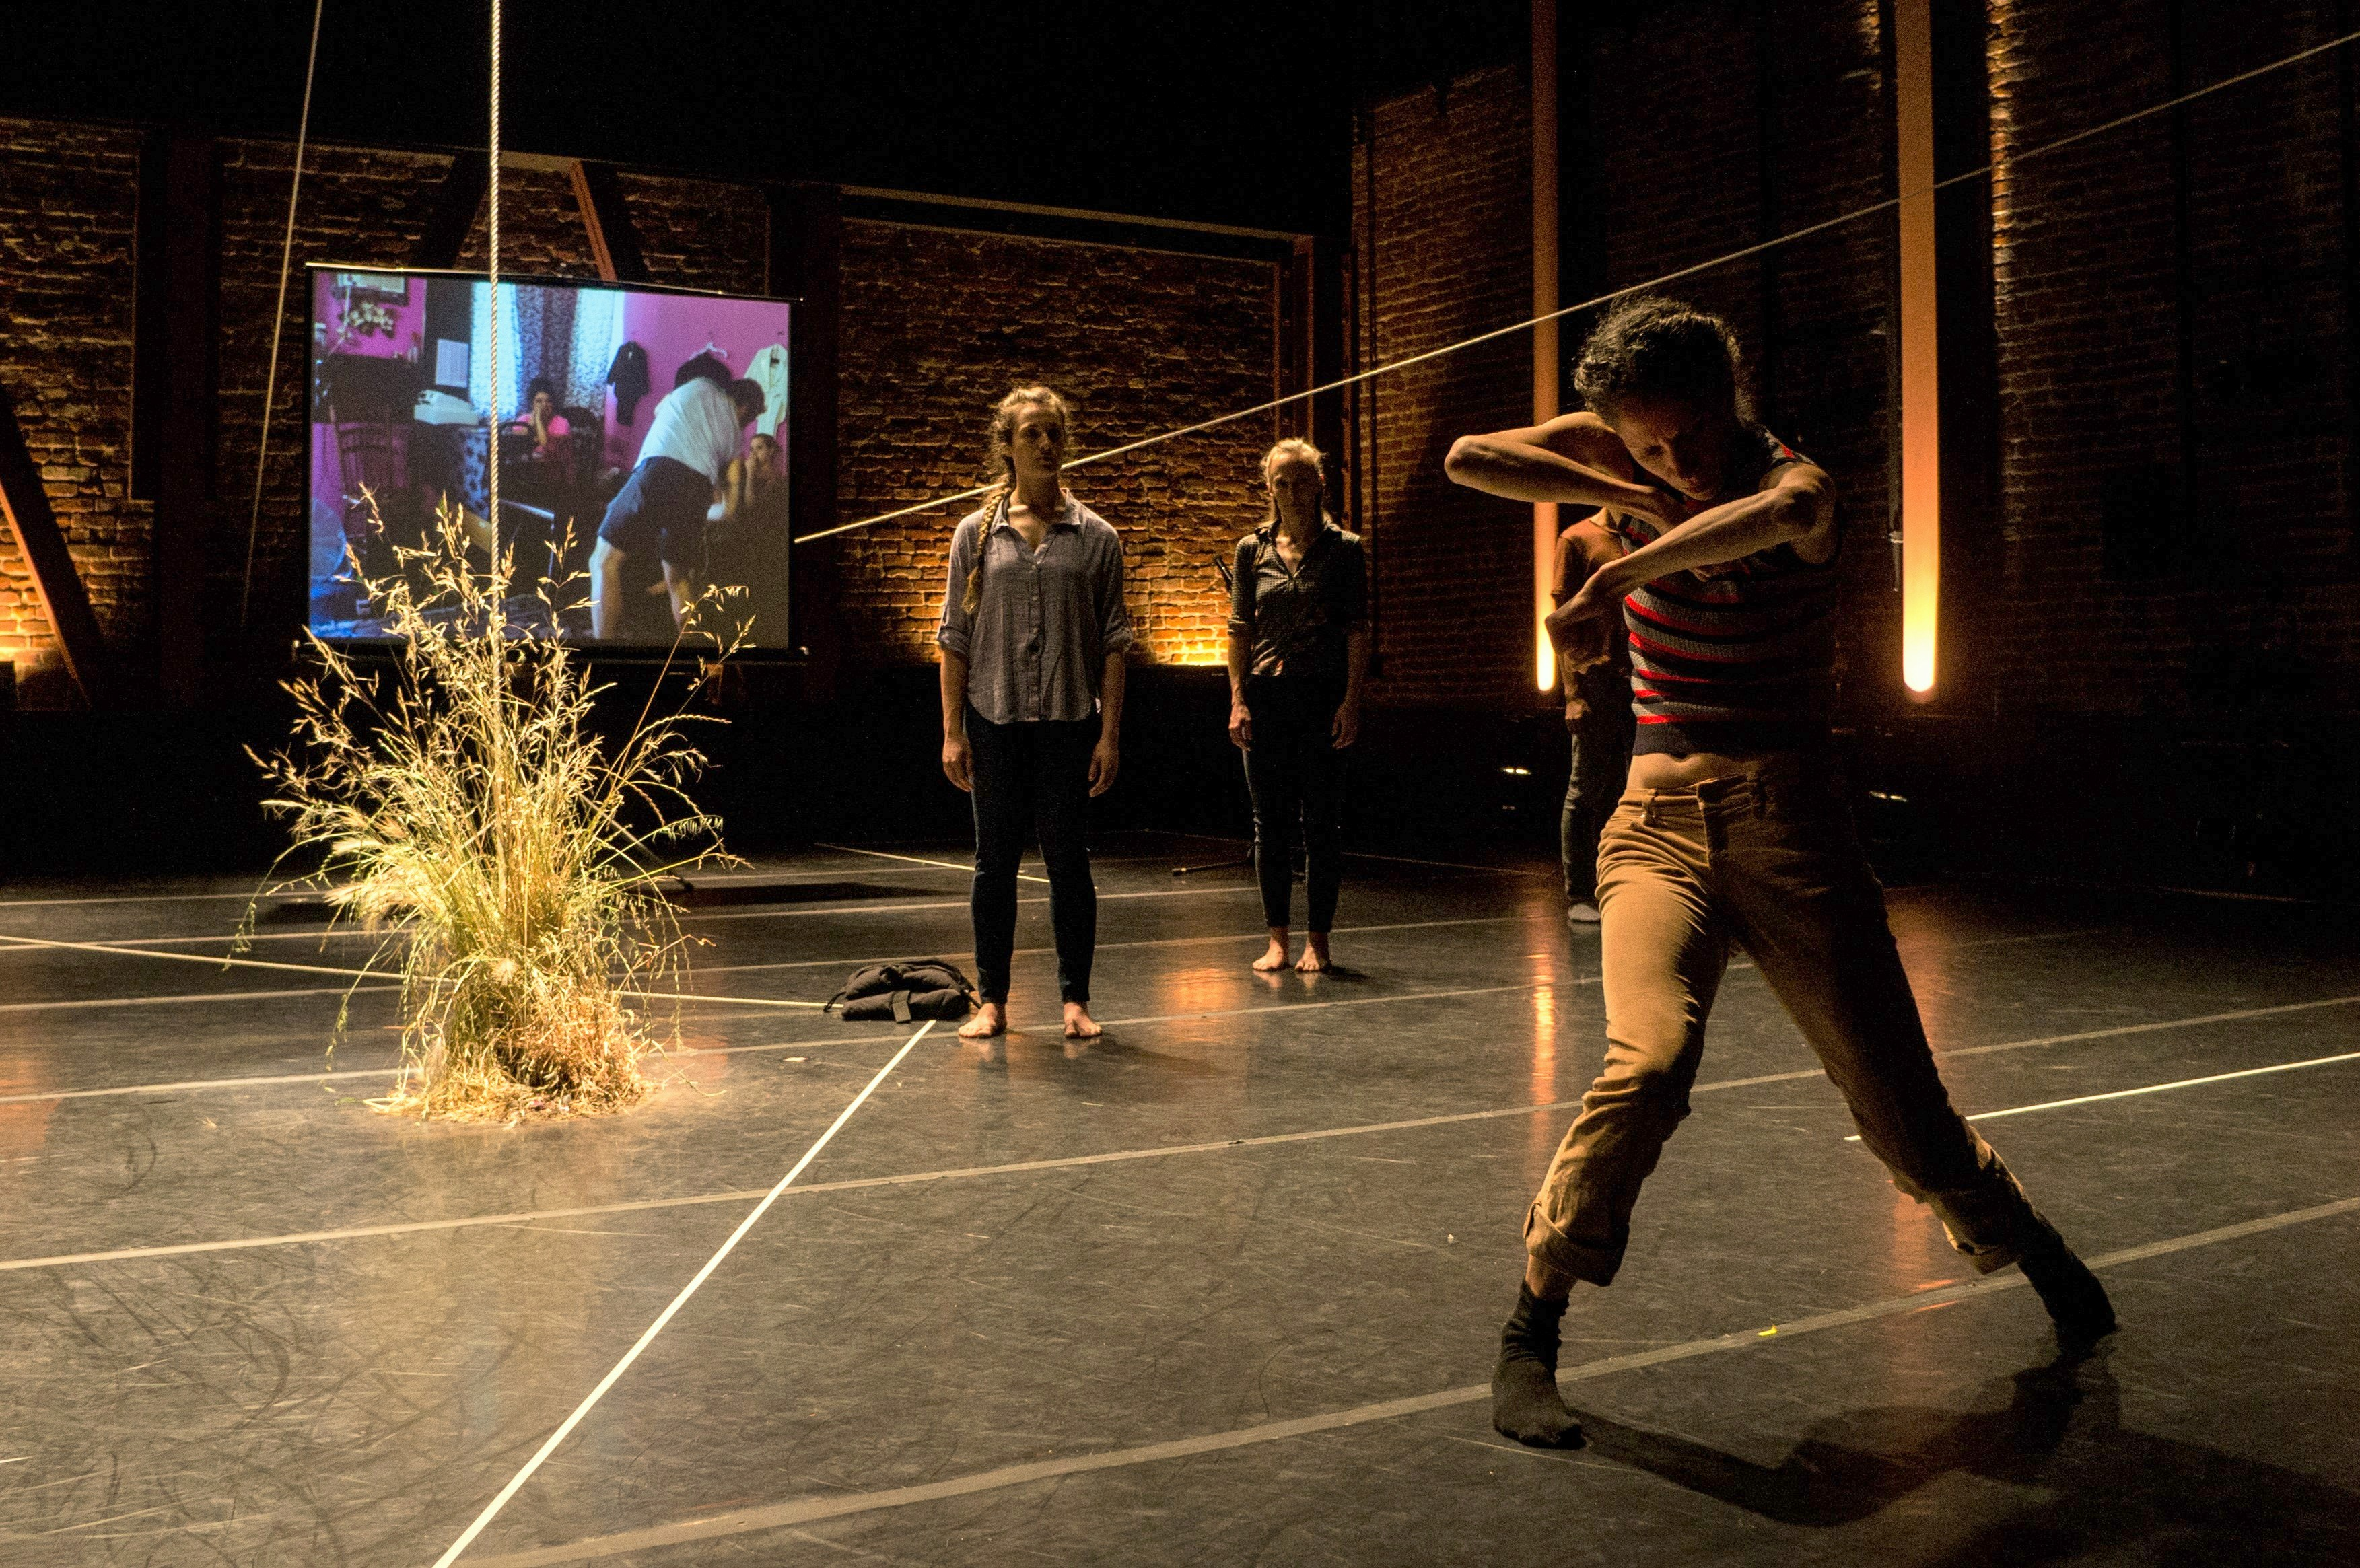 Macintosh HD:Users:joanna:Desktop:From left, Aline Wachsmuth, Katie Faulkner and, downstage, Maurya Kerr in The Foundry's Deep South. Photo by Oxana Ermolova.jpg